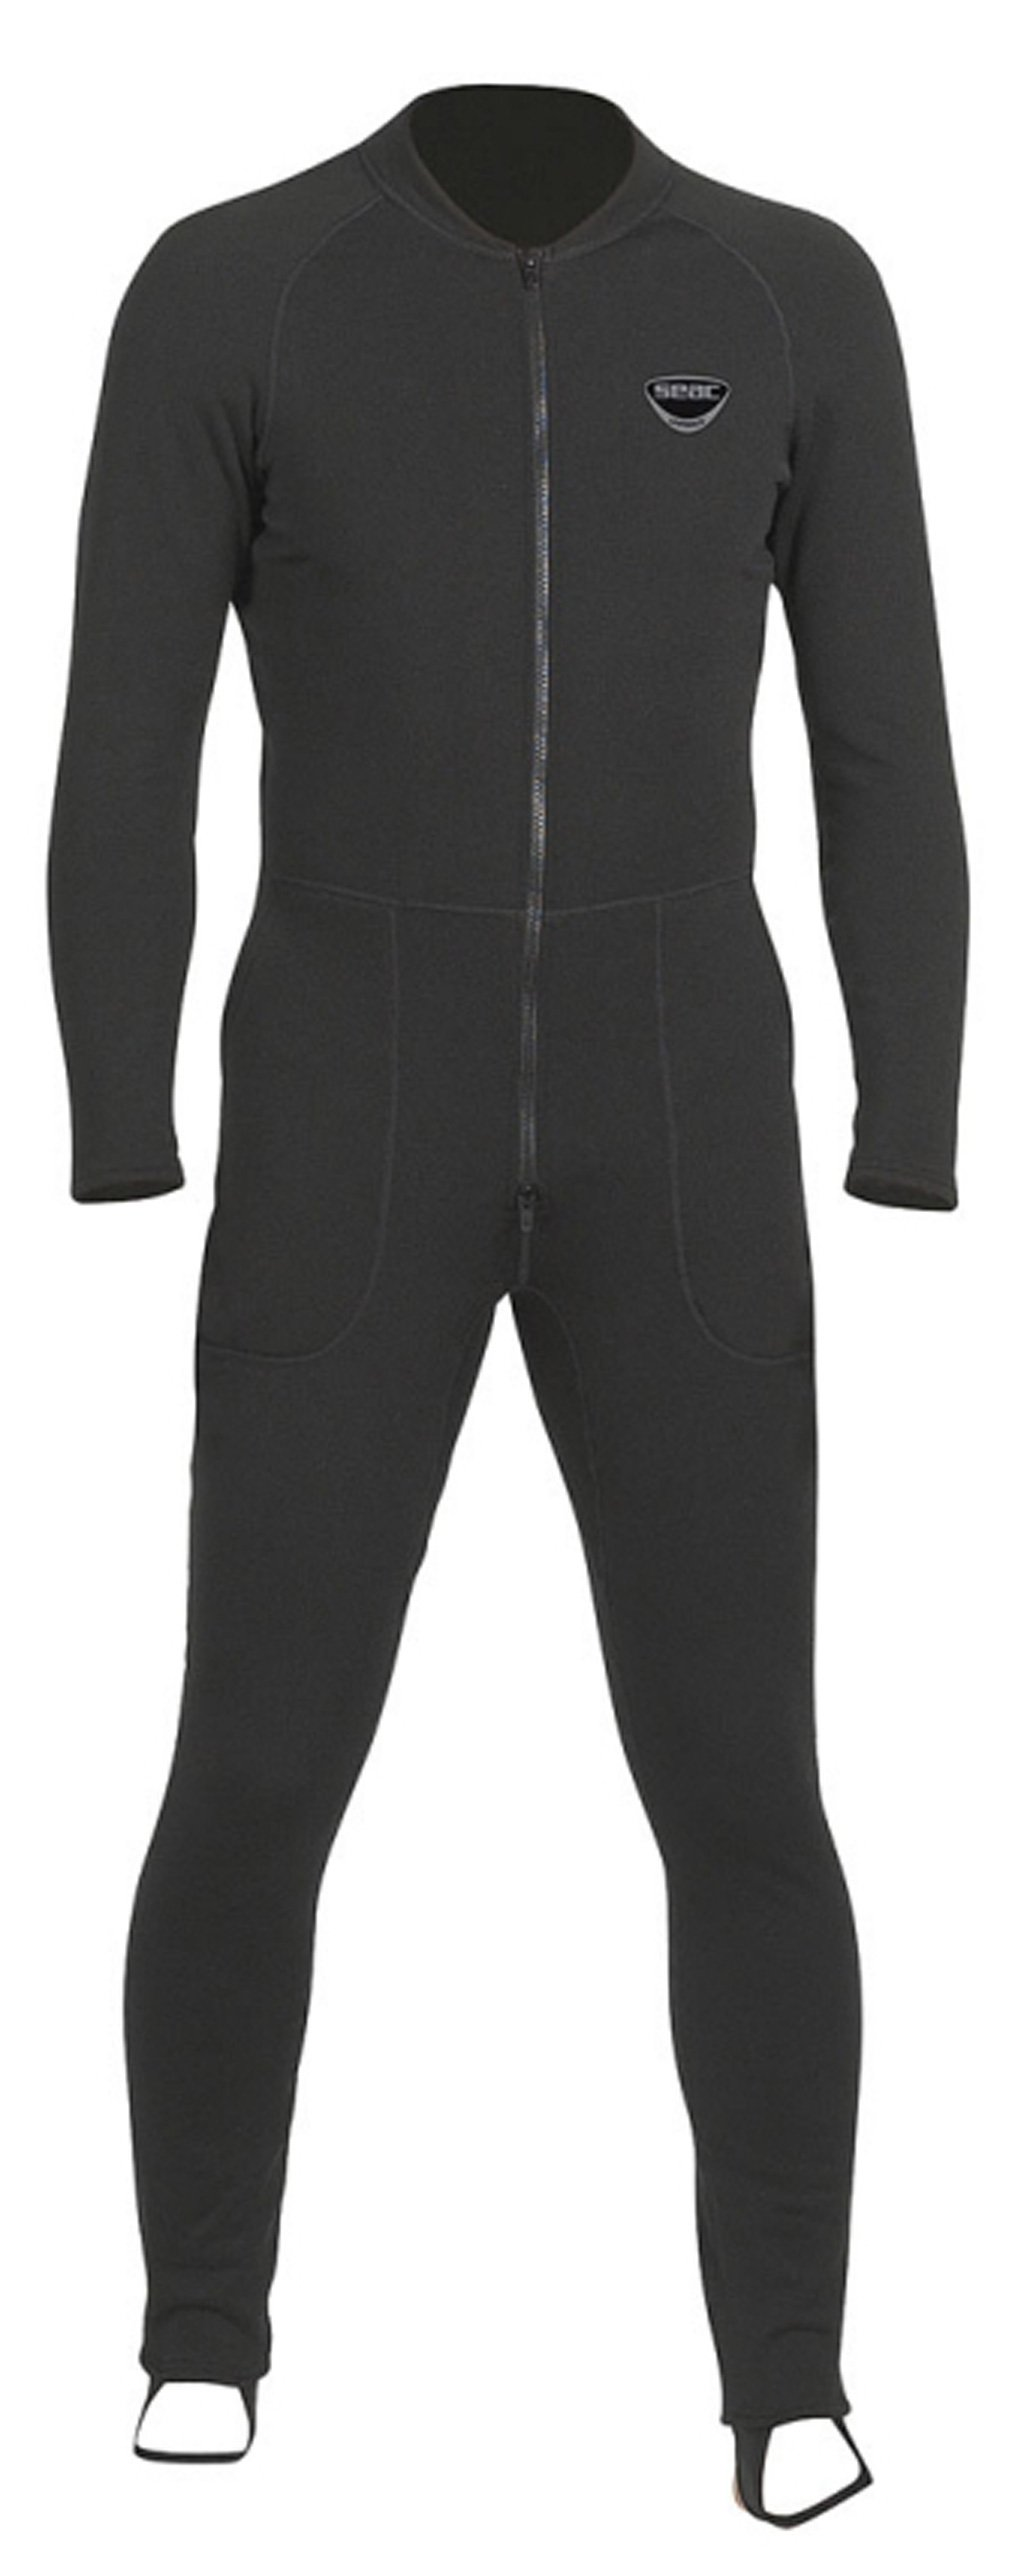 SEAC Unifleece Insulating Undergarment Dry Suit, Black, XX-Small